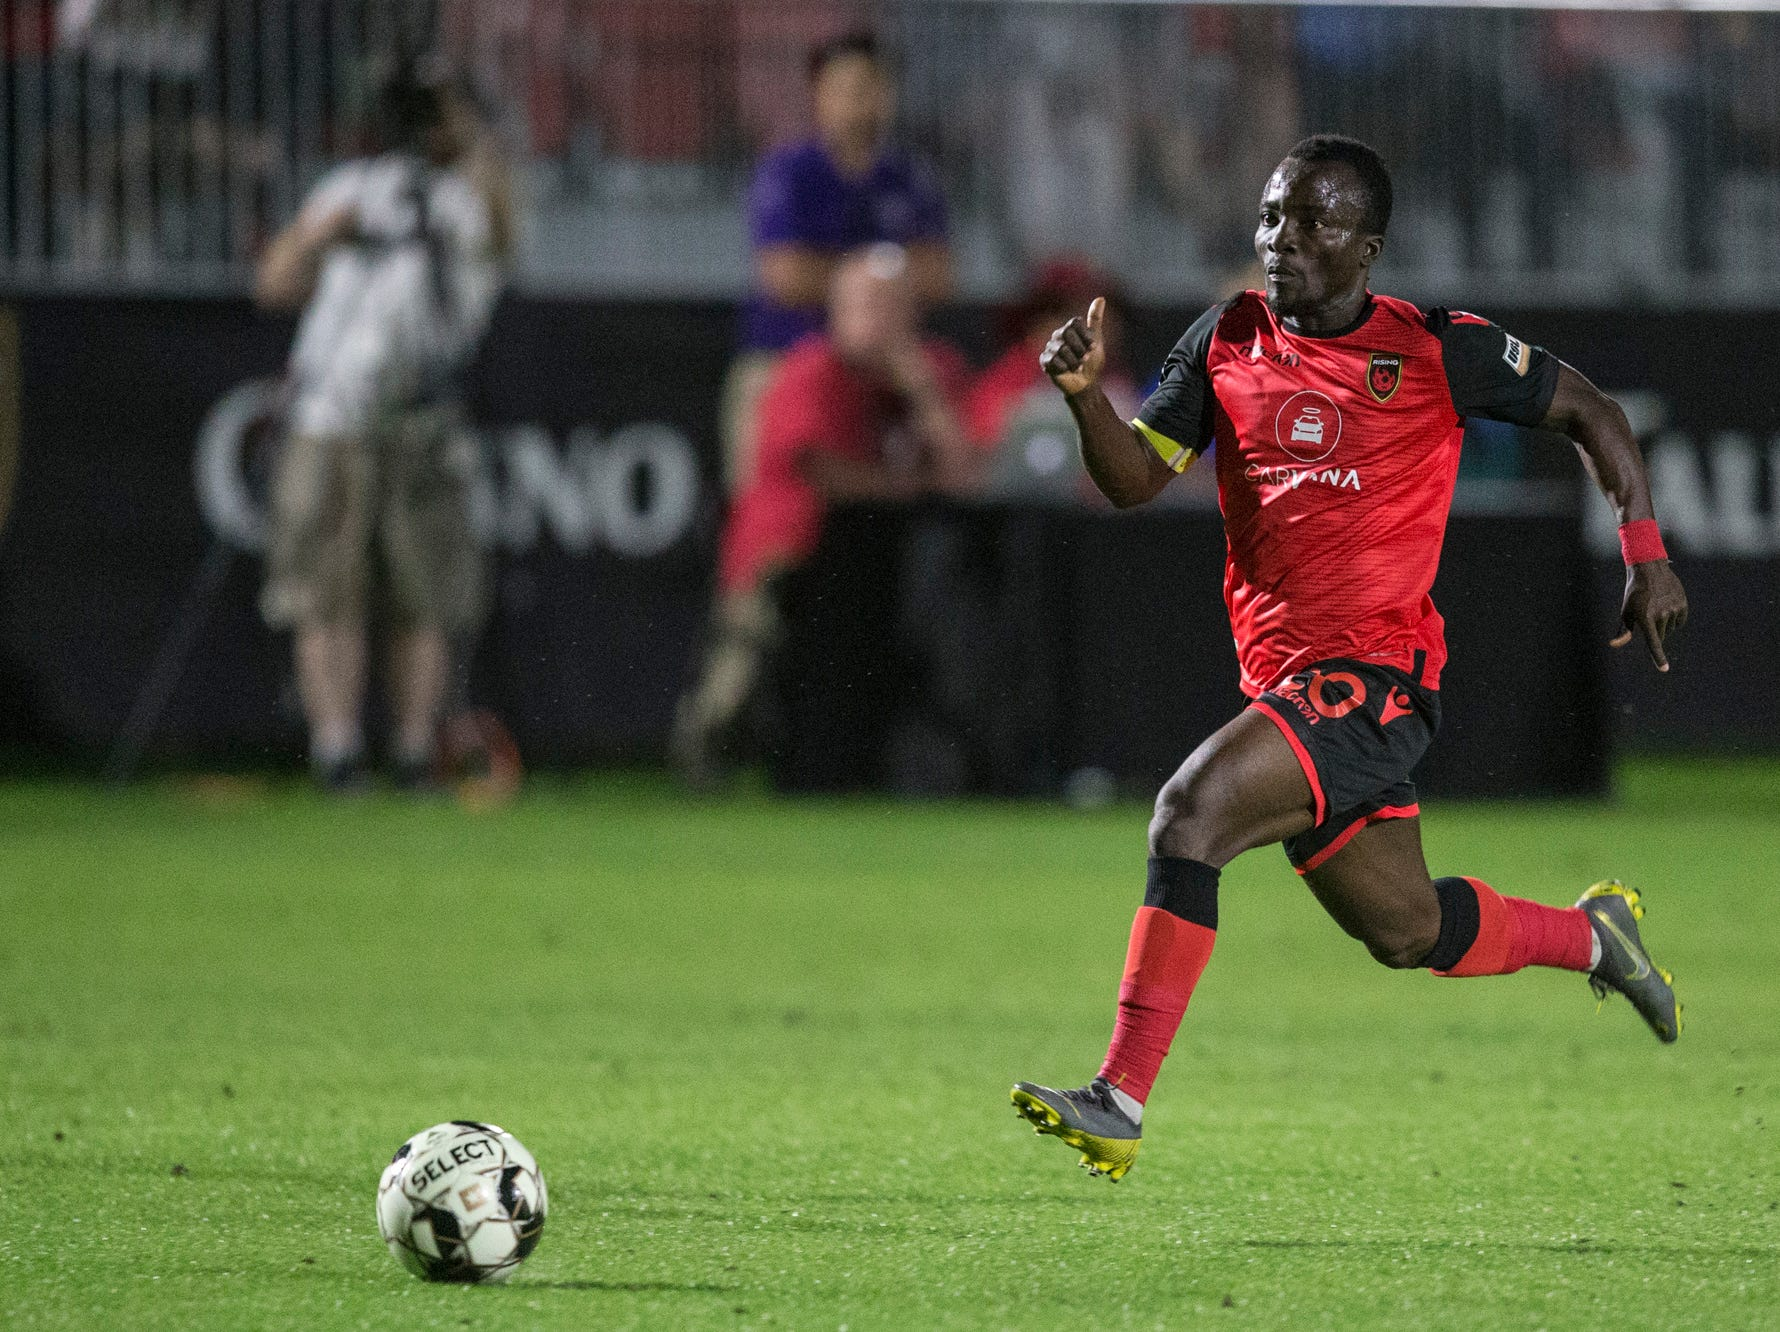 Phoenix Rising's Solomon Asante drives downfield against Colorado Springs in the first half on Saturday, Mar. 30, 2019, at Casino Arizona Field in Tempe, Ariz.